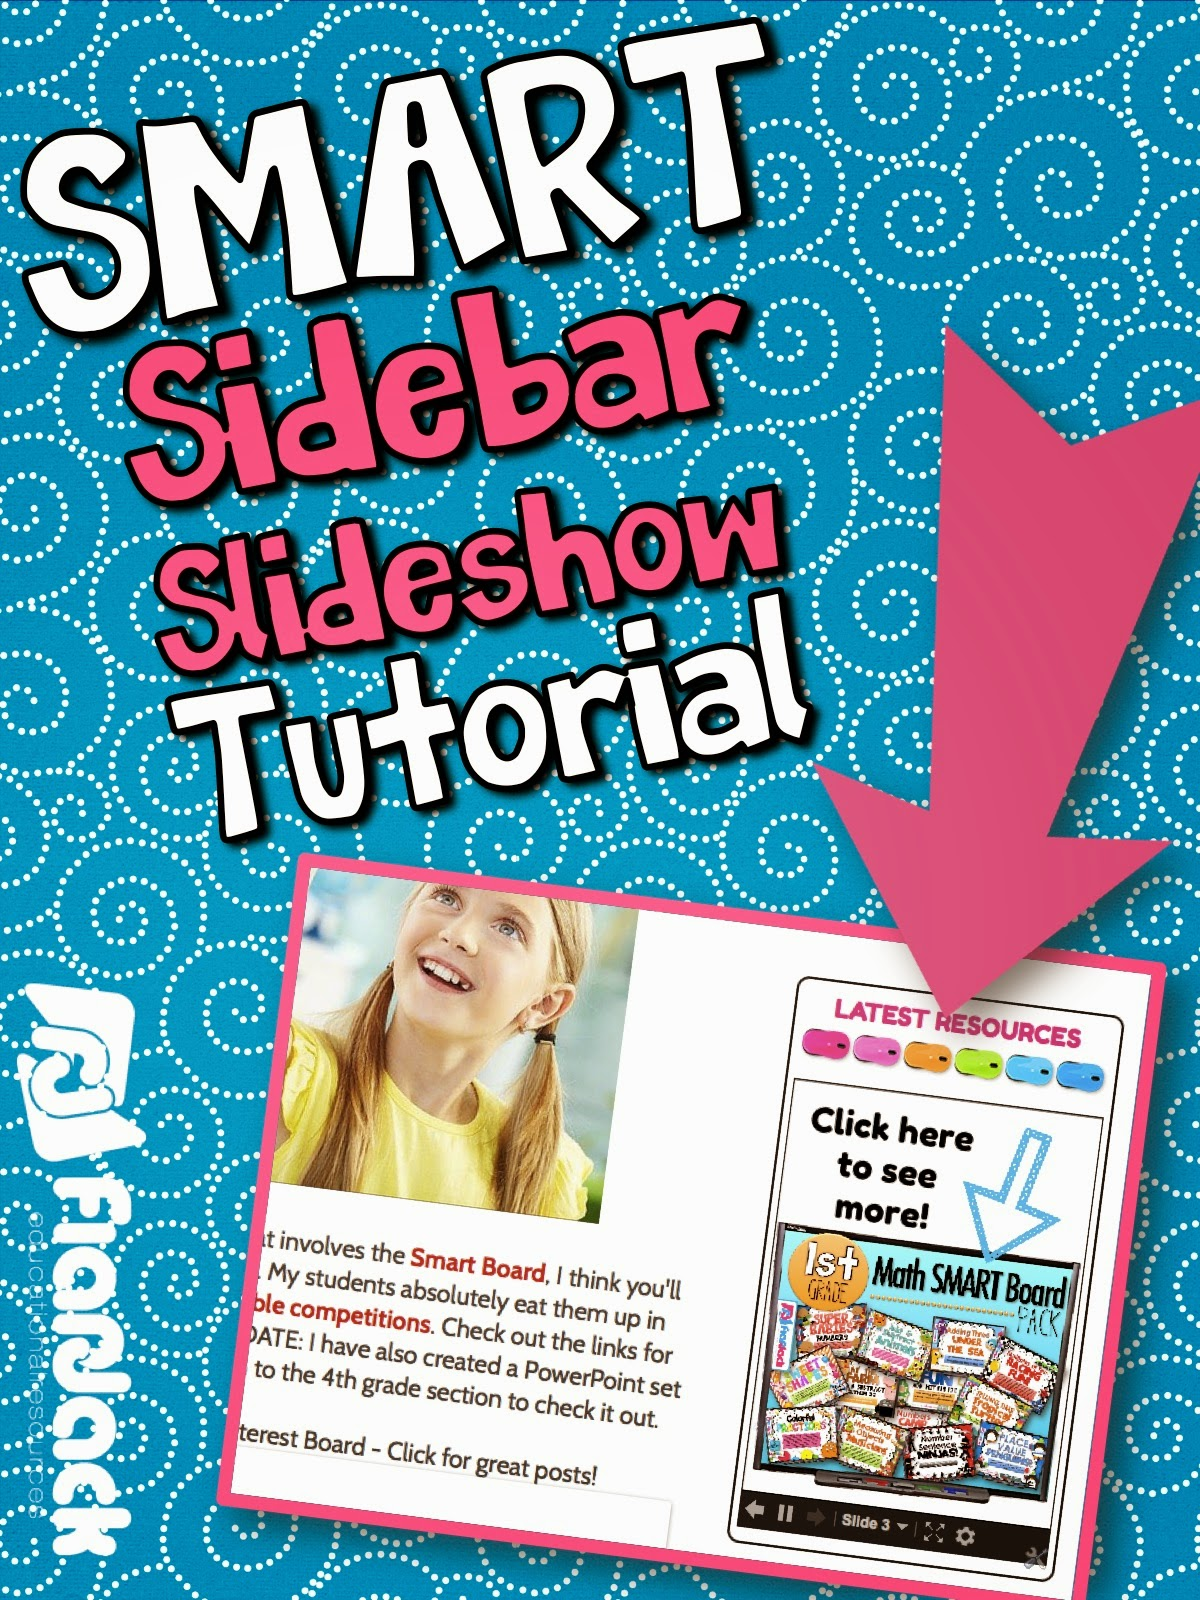 Easy Sidebar Slideshow Tutorial